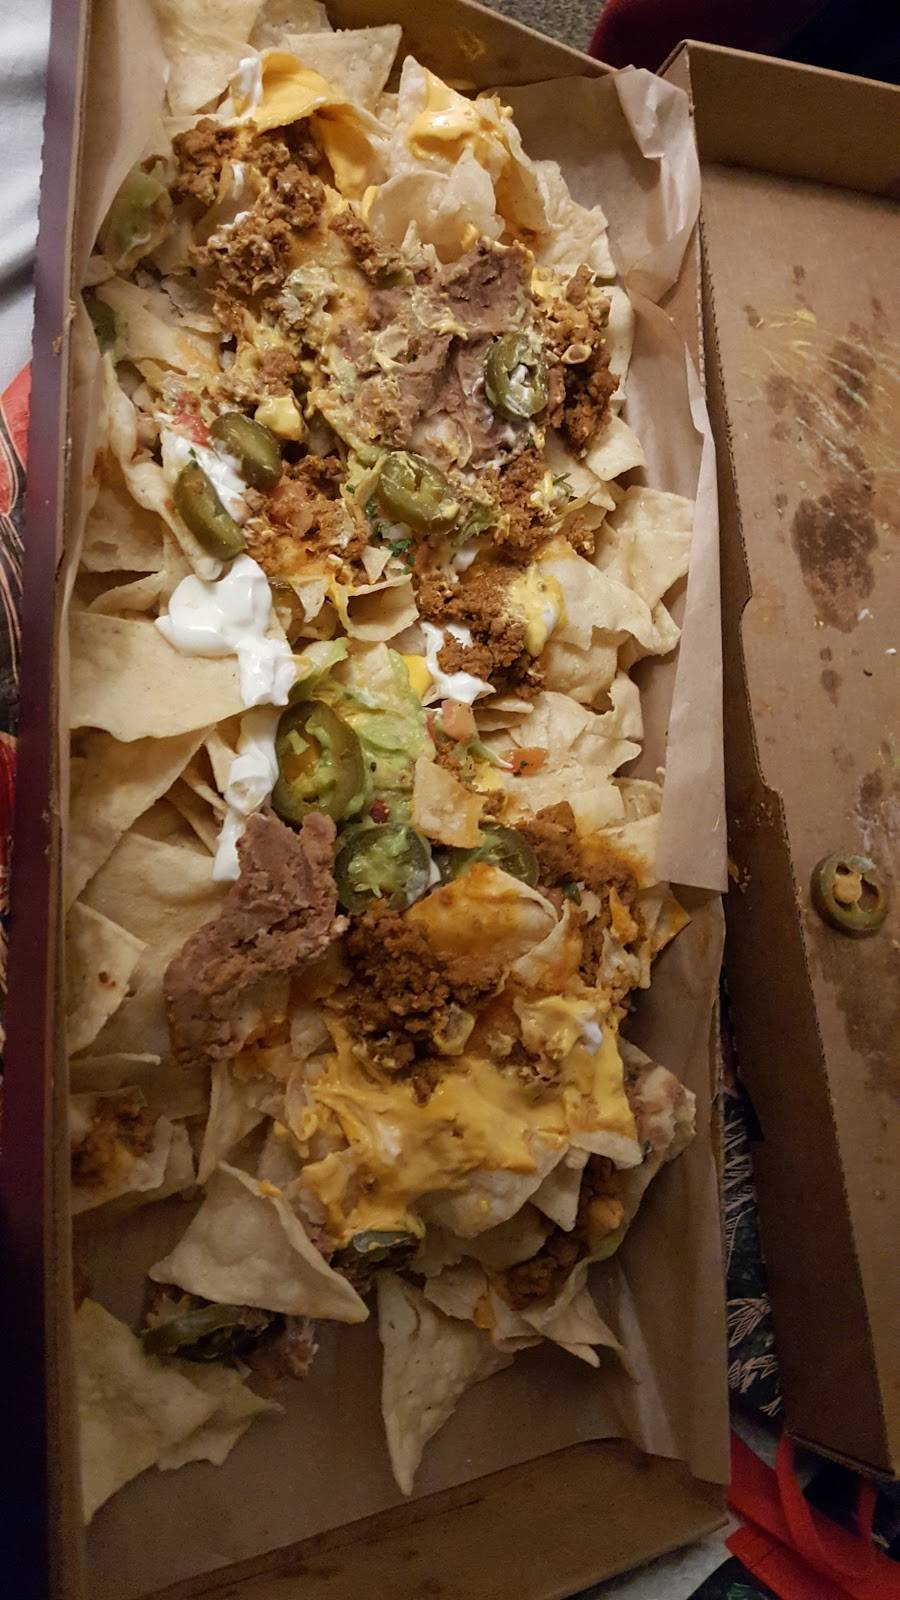 Taco Bell Cantina - Meal takeaway  5 Plymouth Ave, Fall River